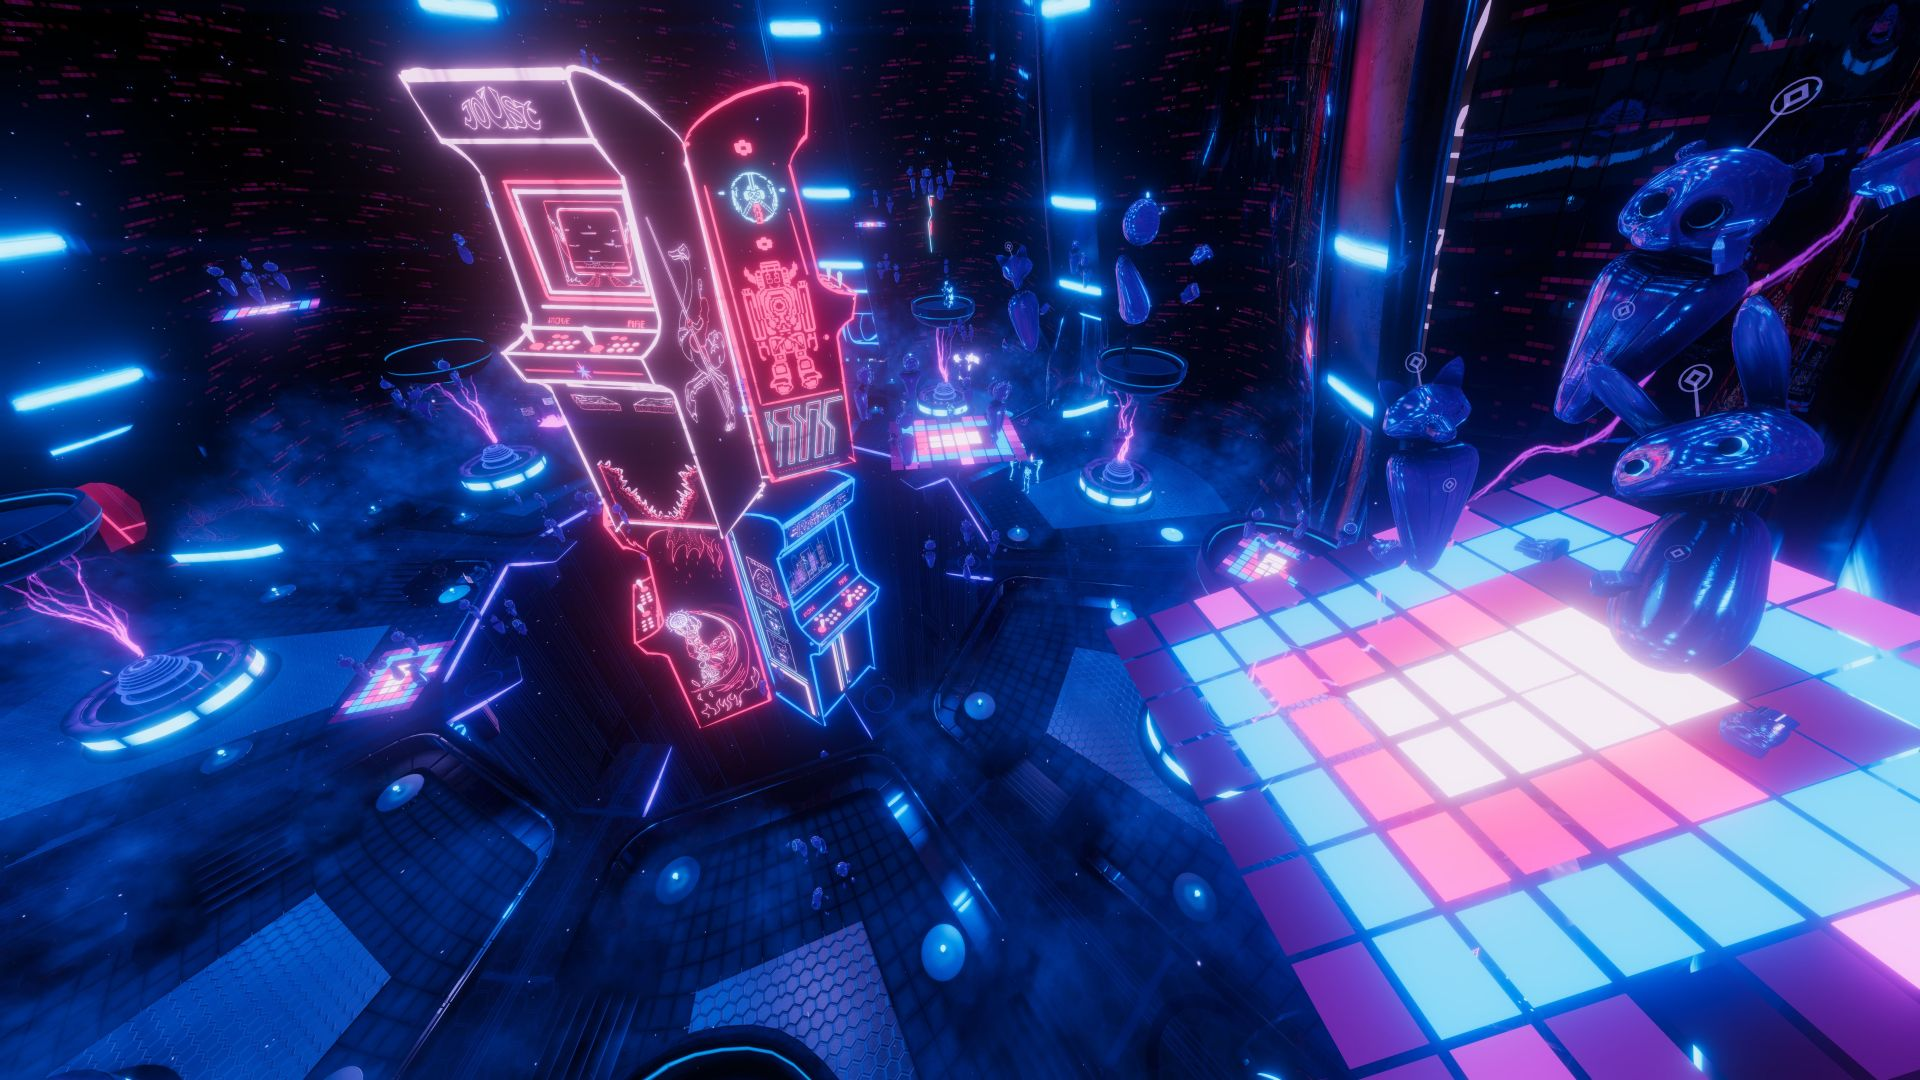 Sxsw 2018 Thewavevr Brings Zero Gravity Club Scene From Ready